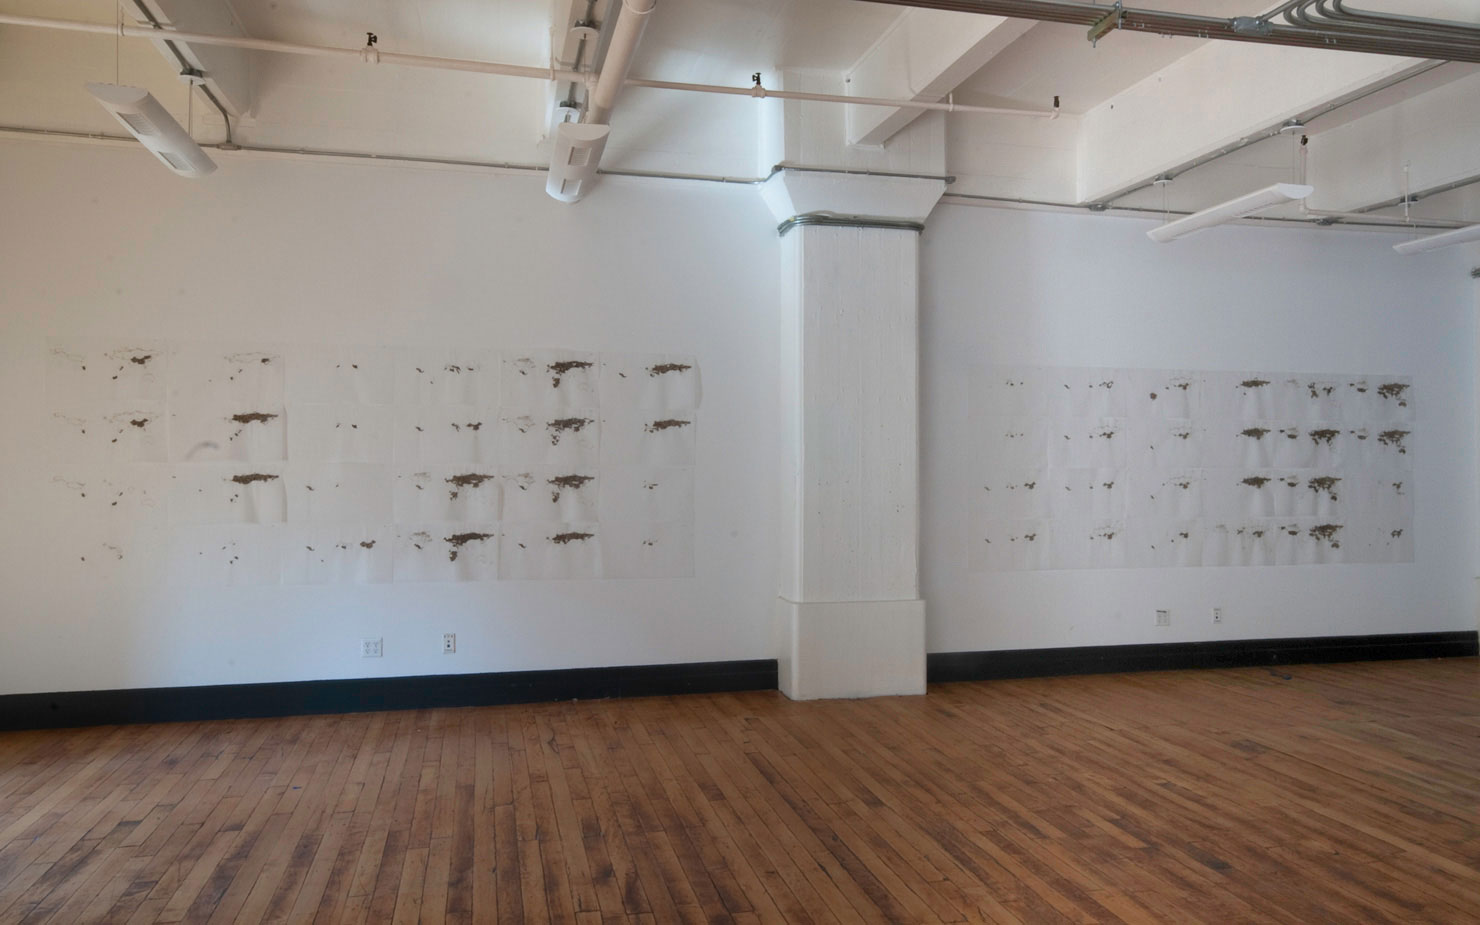 """111 Years"" comprises of 111 drawings that map a century of war on our planet from 1900 to 2010. Methodology"